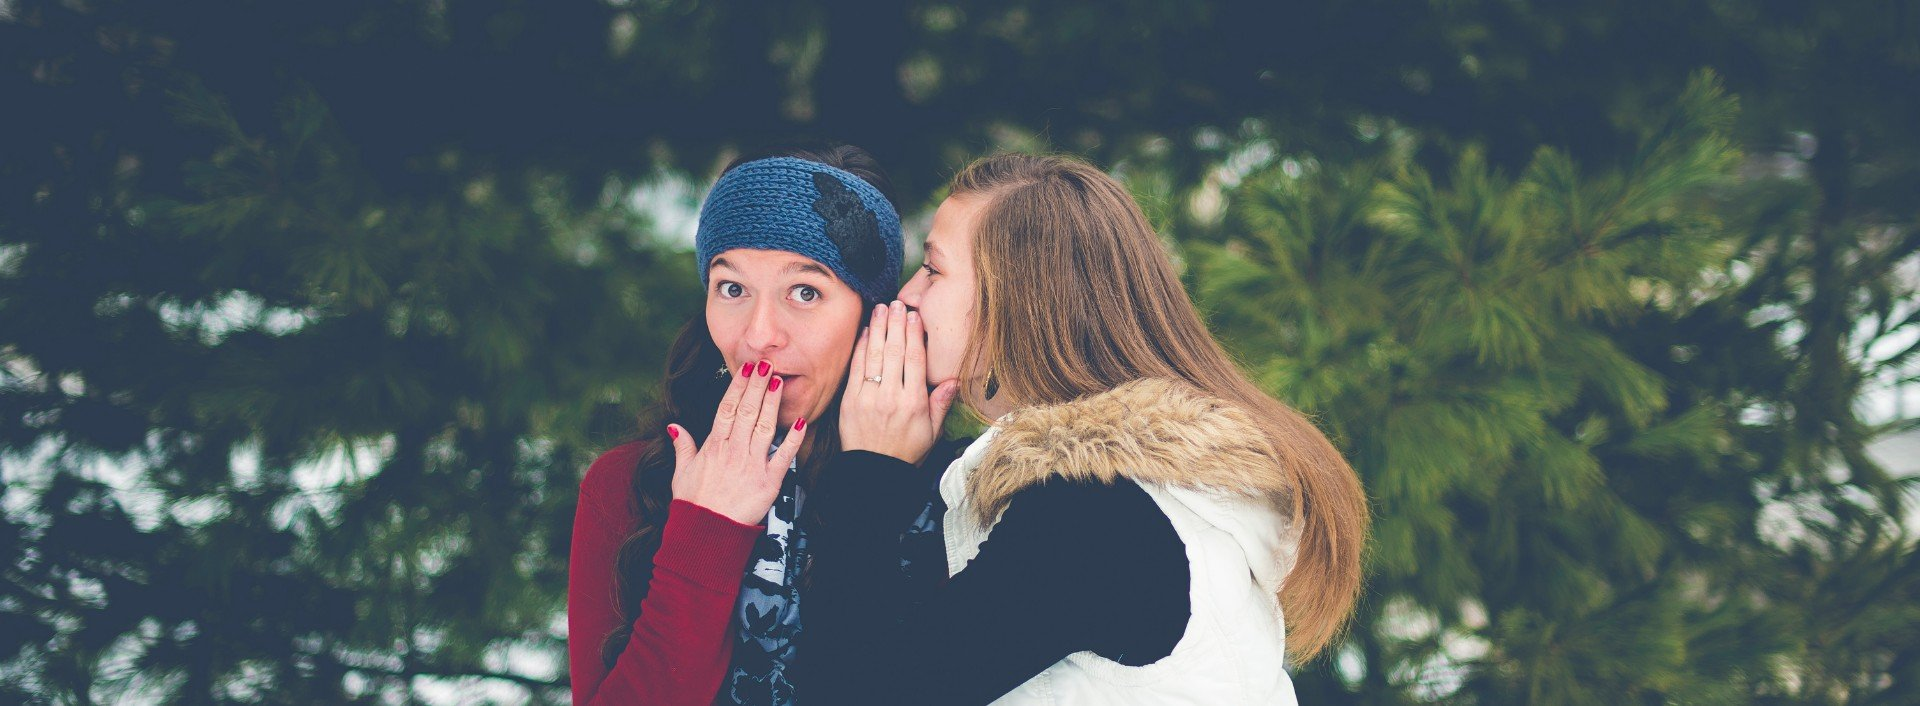 Two girls whispering spoken English to each other.